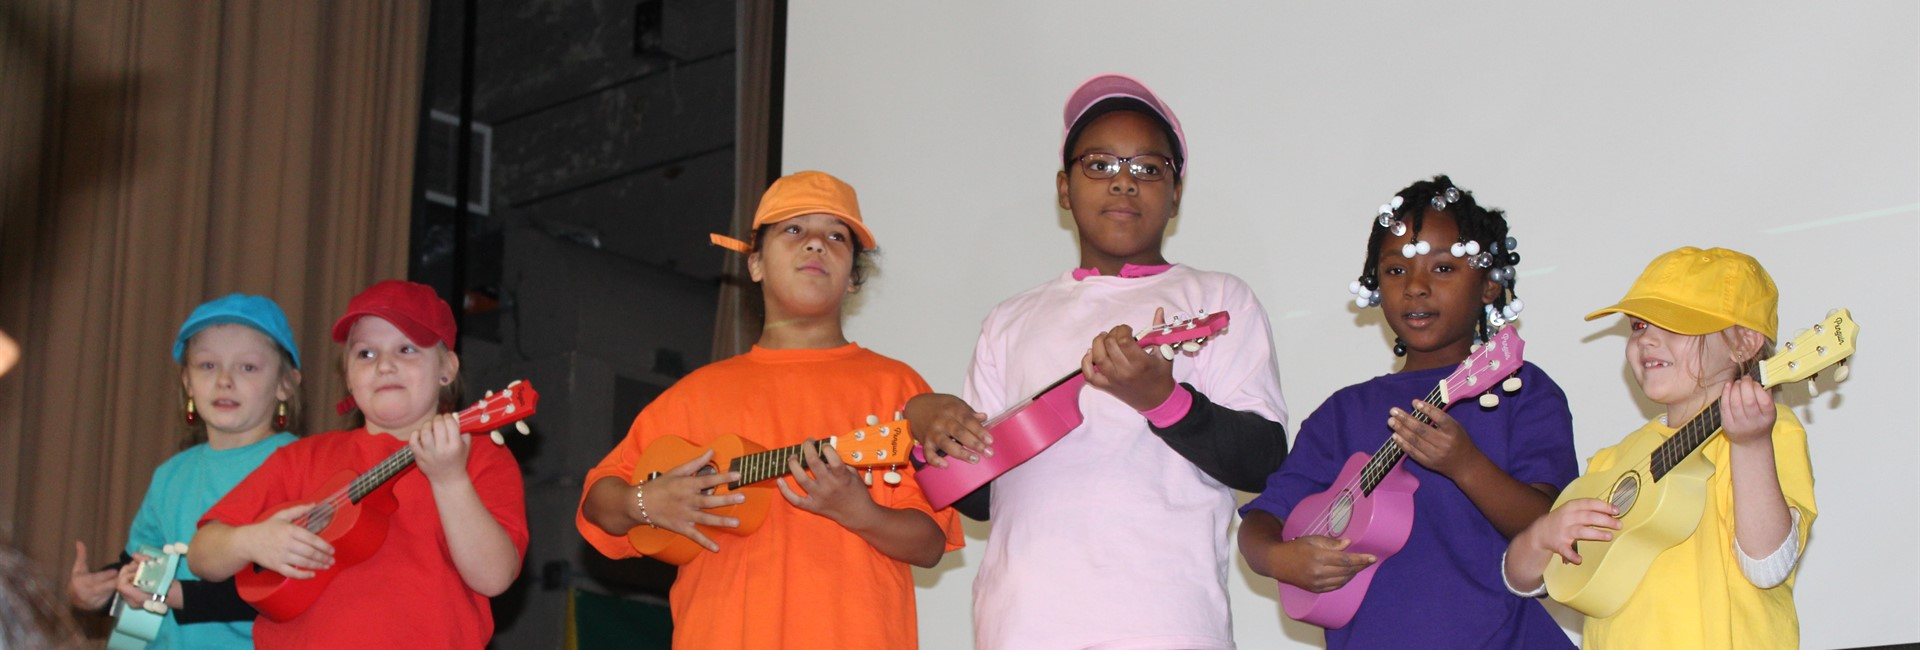 Students at Sixth District use their musical talent to play the ukulele.